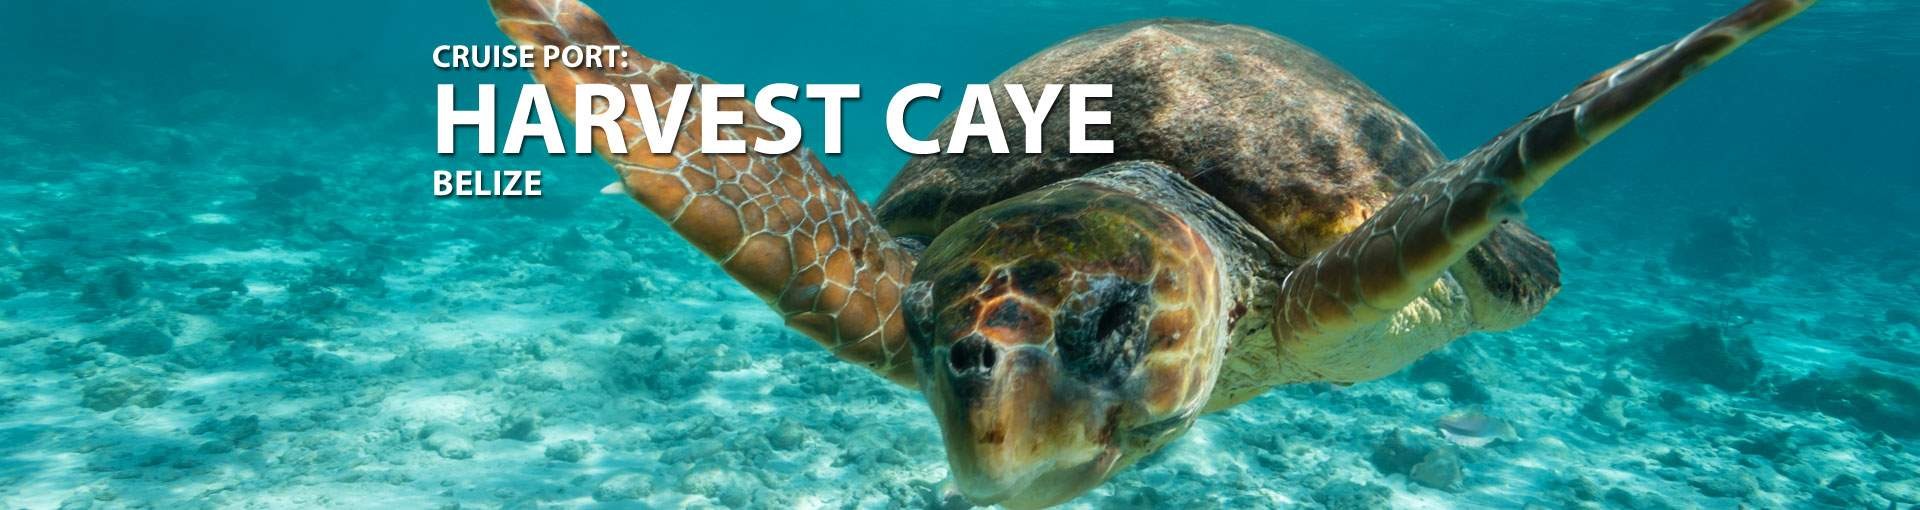 Cruises to Harvest Caye, Belize